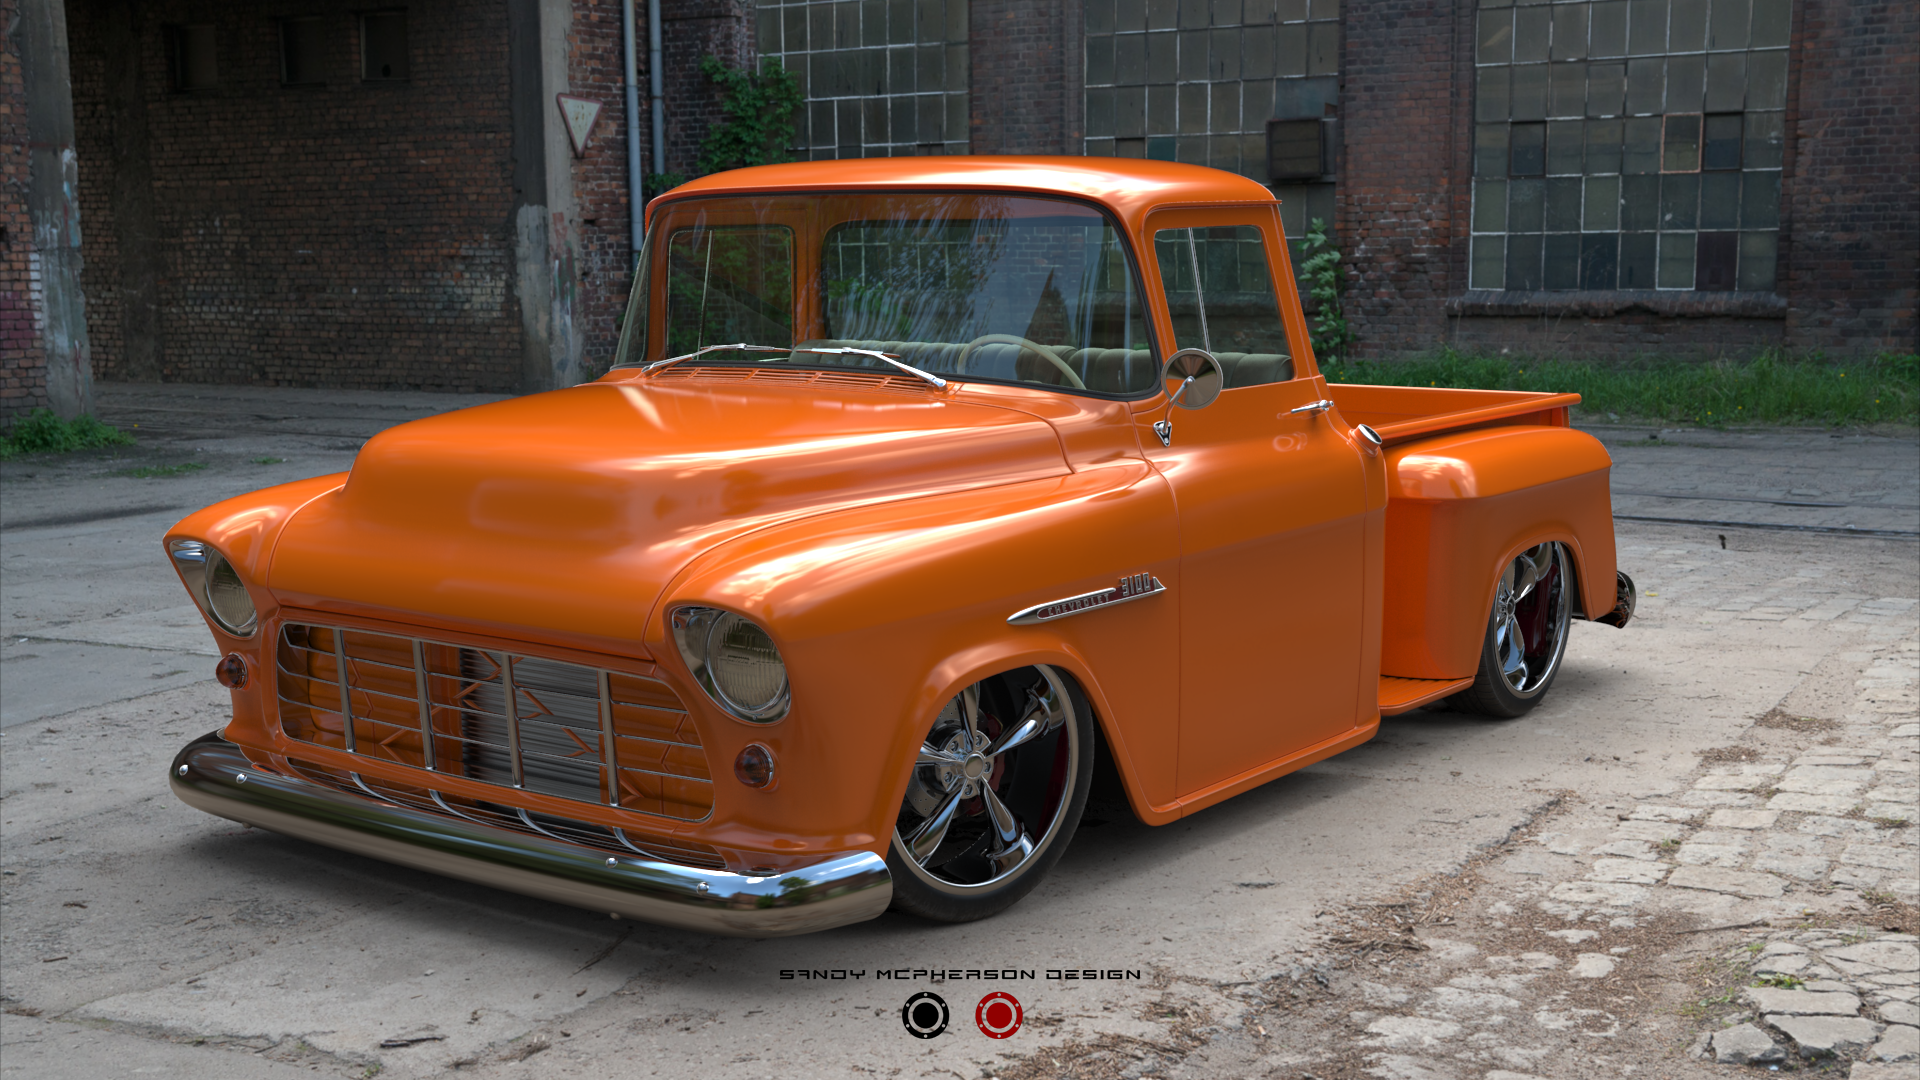 1955 chevy pickup outline 55 59 chevrolet task force trucks pinterest chevy pickups chevy and chevrolet